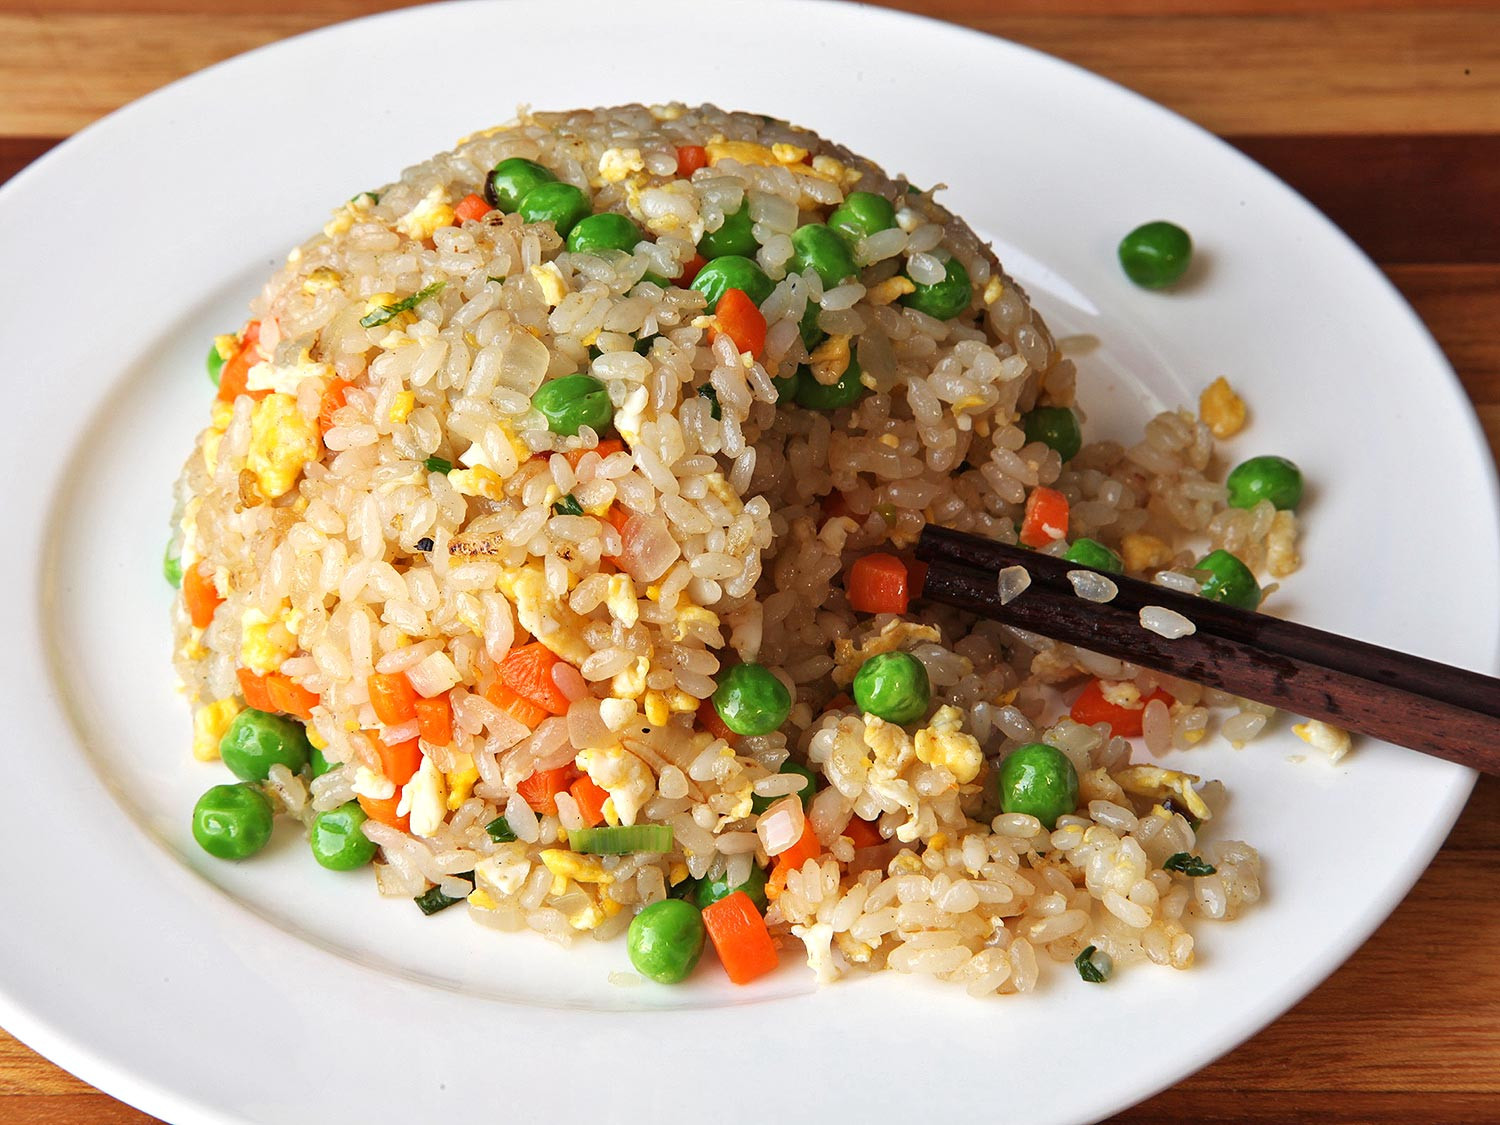 Making Fried Rice  The Food Lab Follow These Rules For the Best Fried Rice